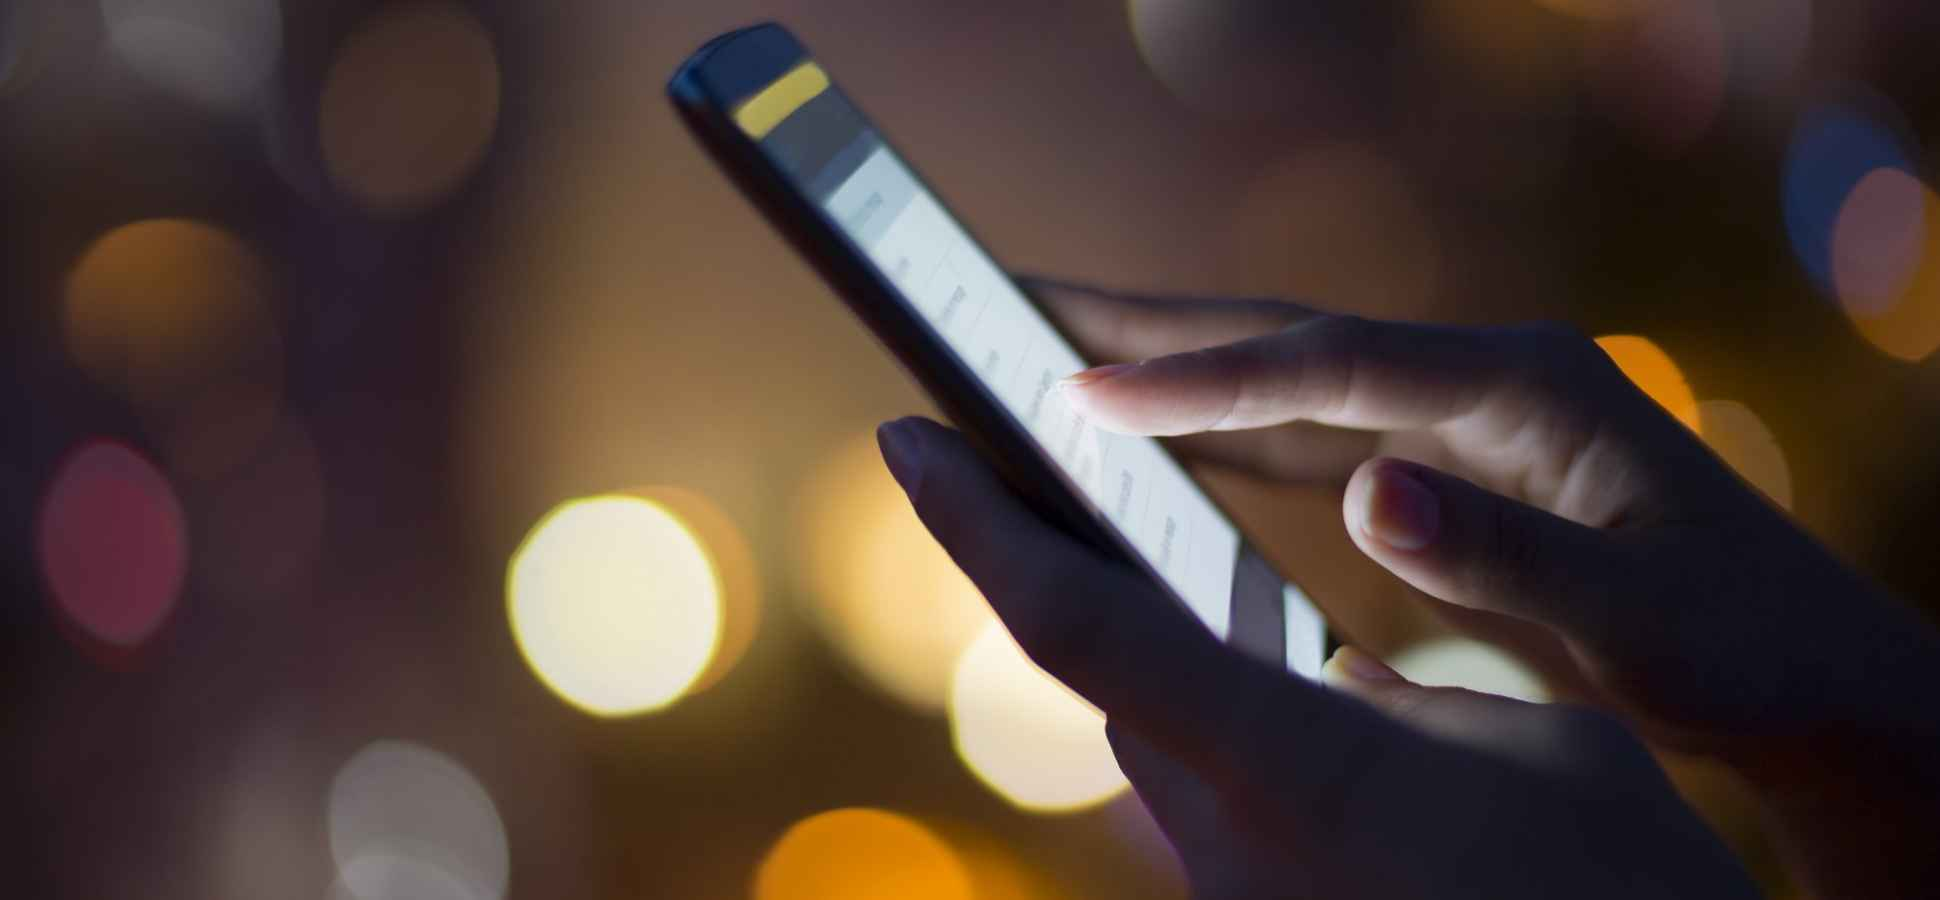 Your Phone Is Wreaking Havoc on Your Productivity! Here Are 3 Ways to be Productive Without it.